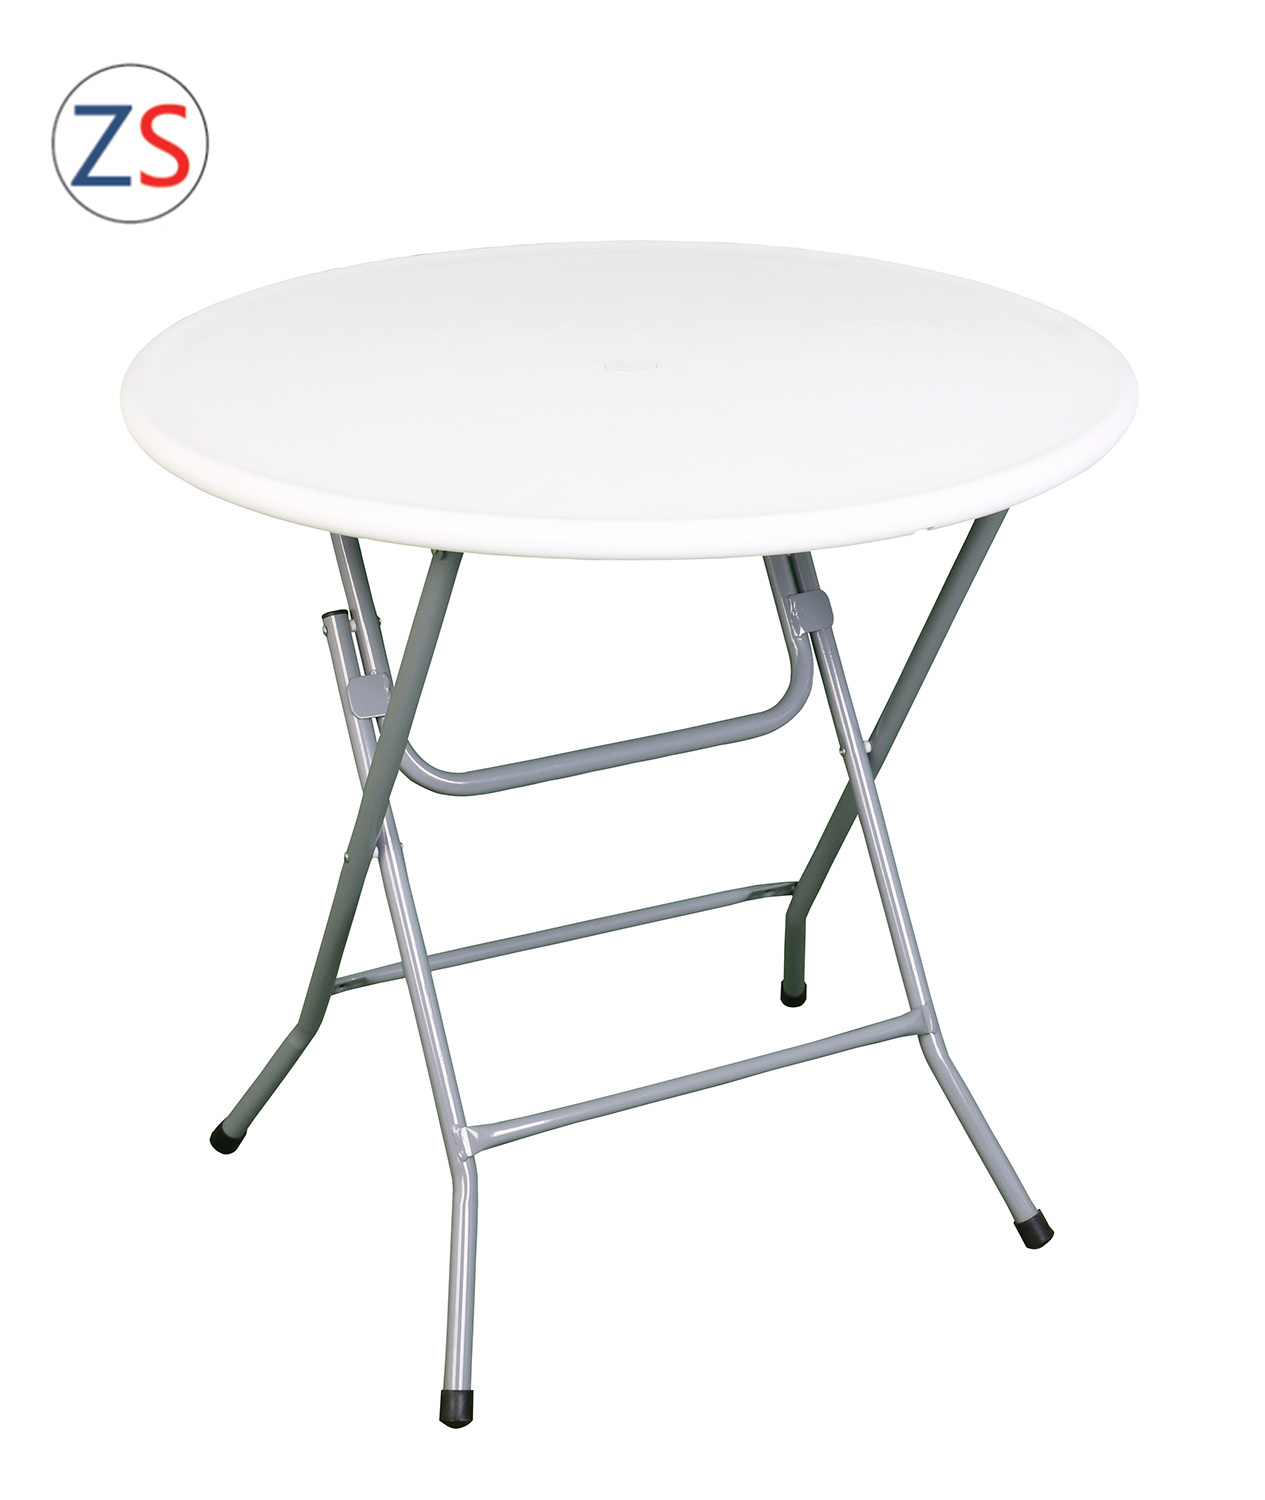 China 80cm Outdoor Round Folding Table, Small Round Folding Cafe Table